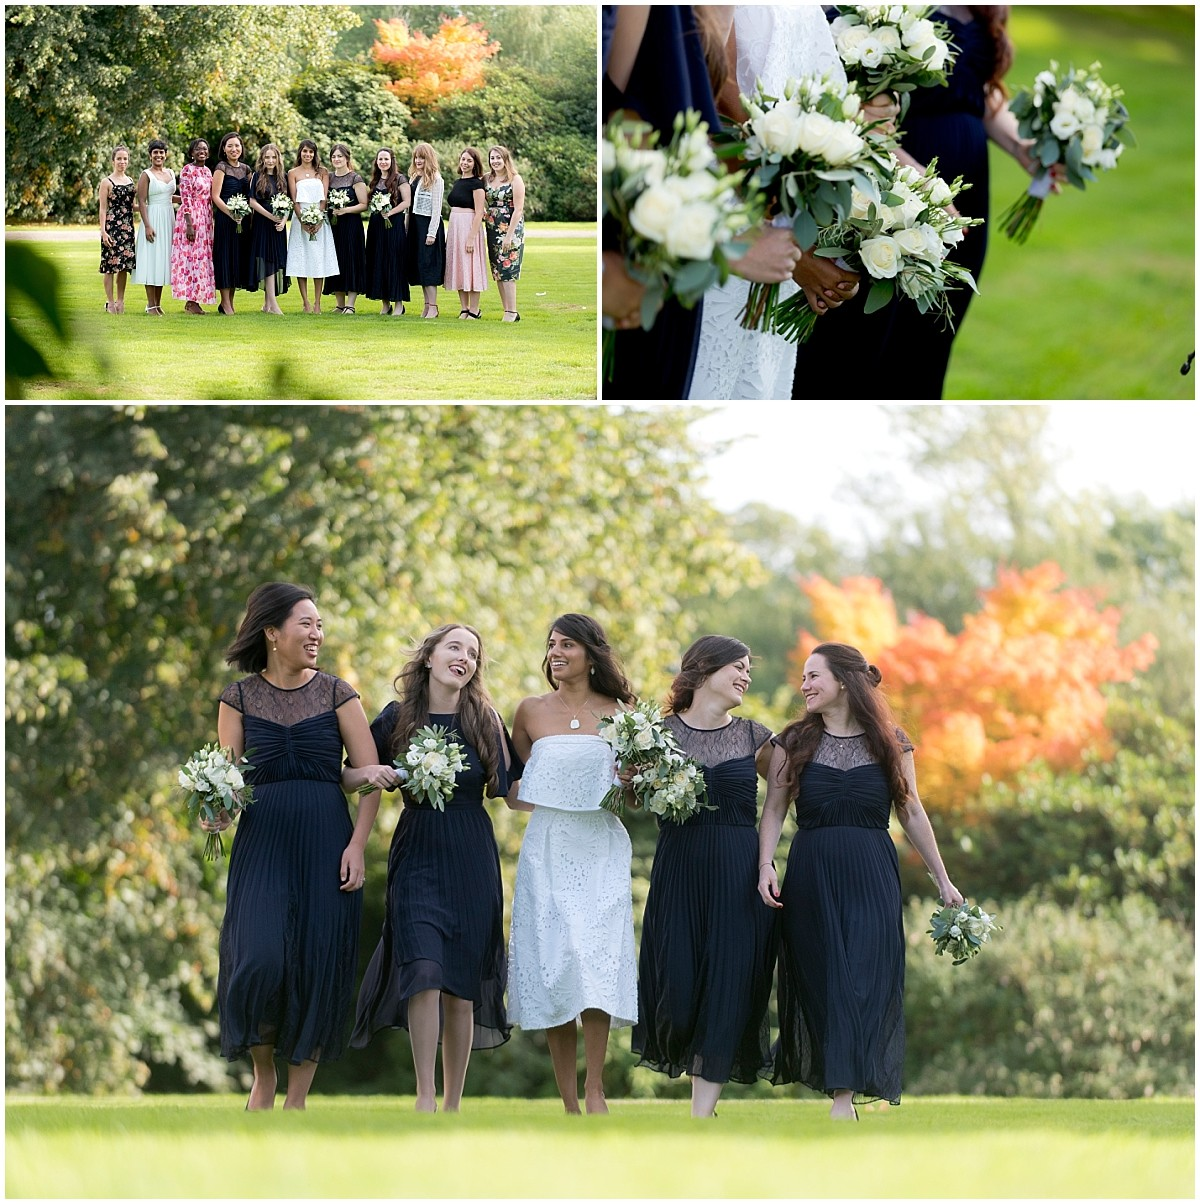 Bridesmaids portraits at Yeldersley Hall